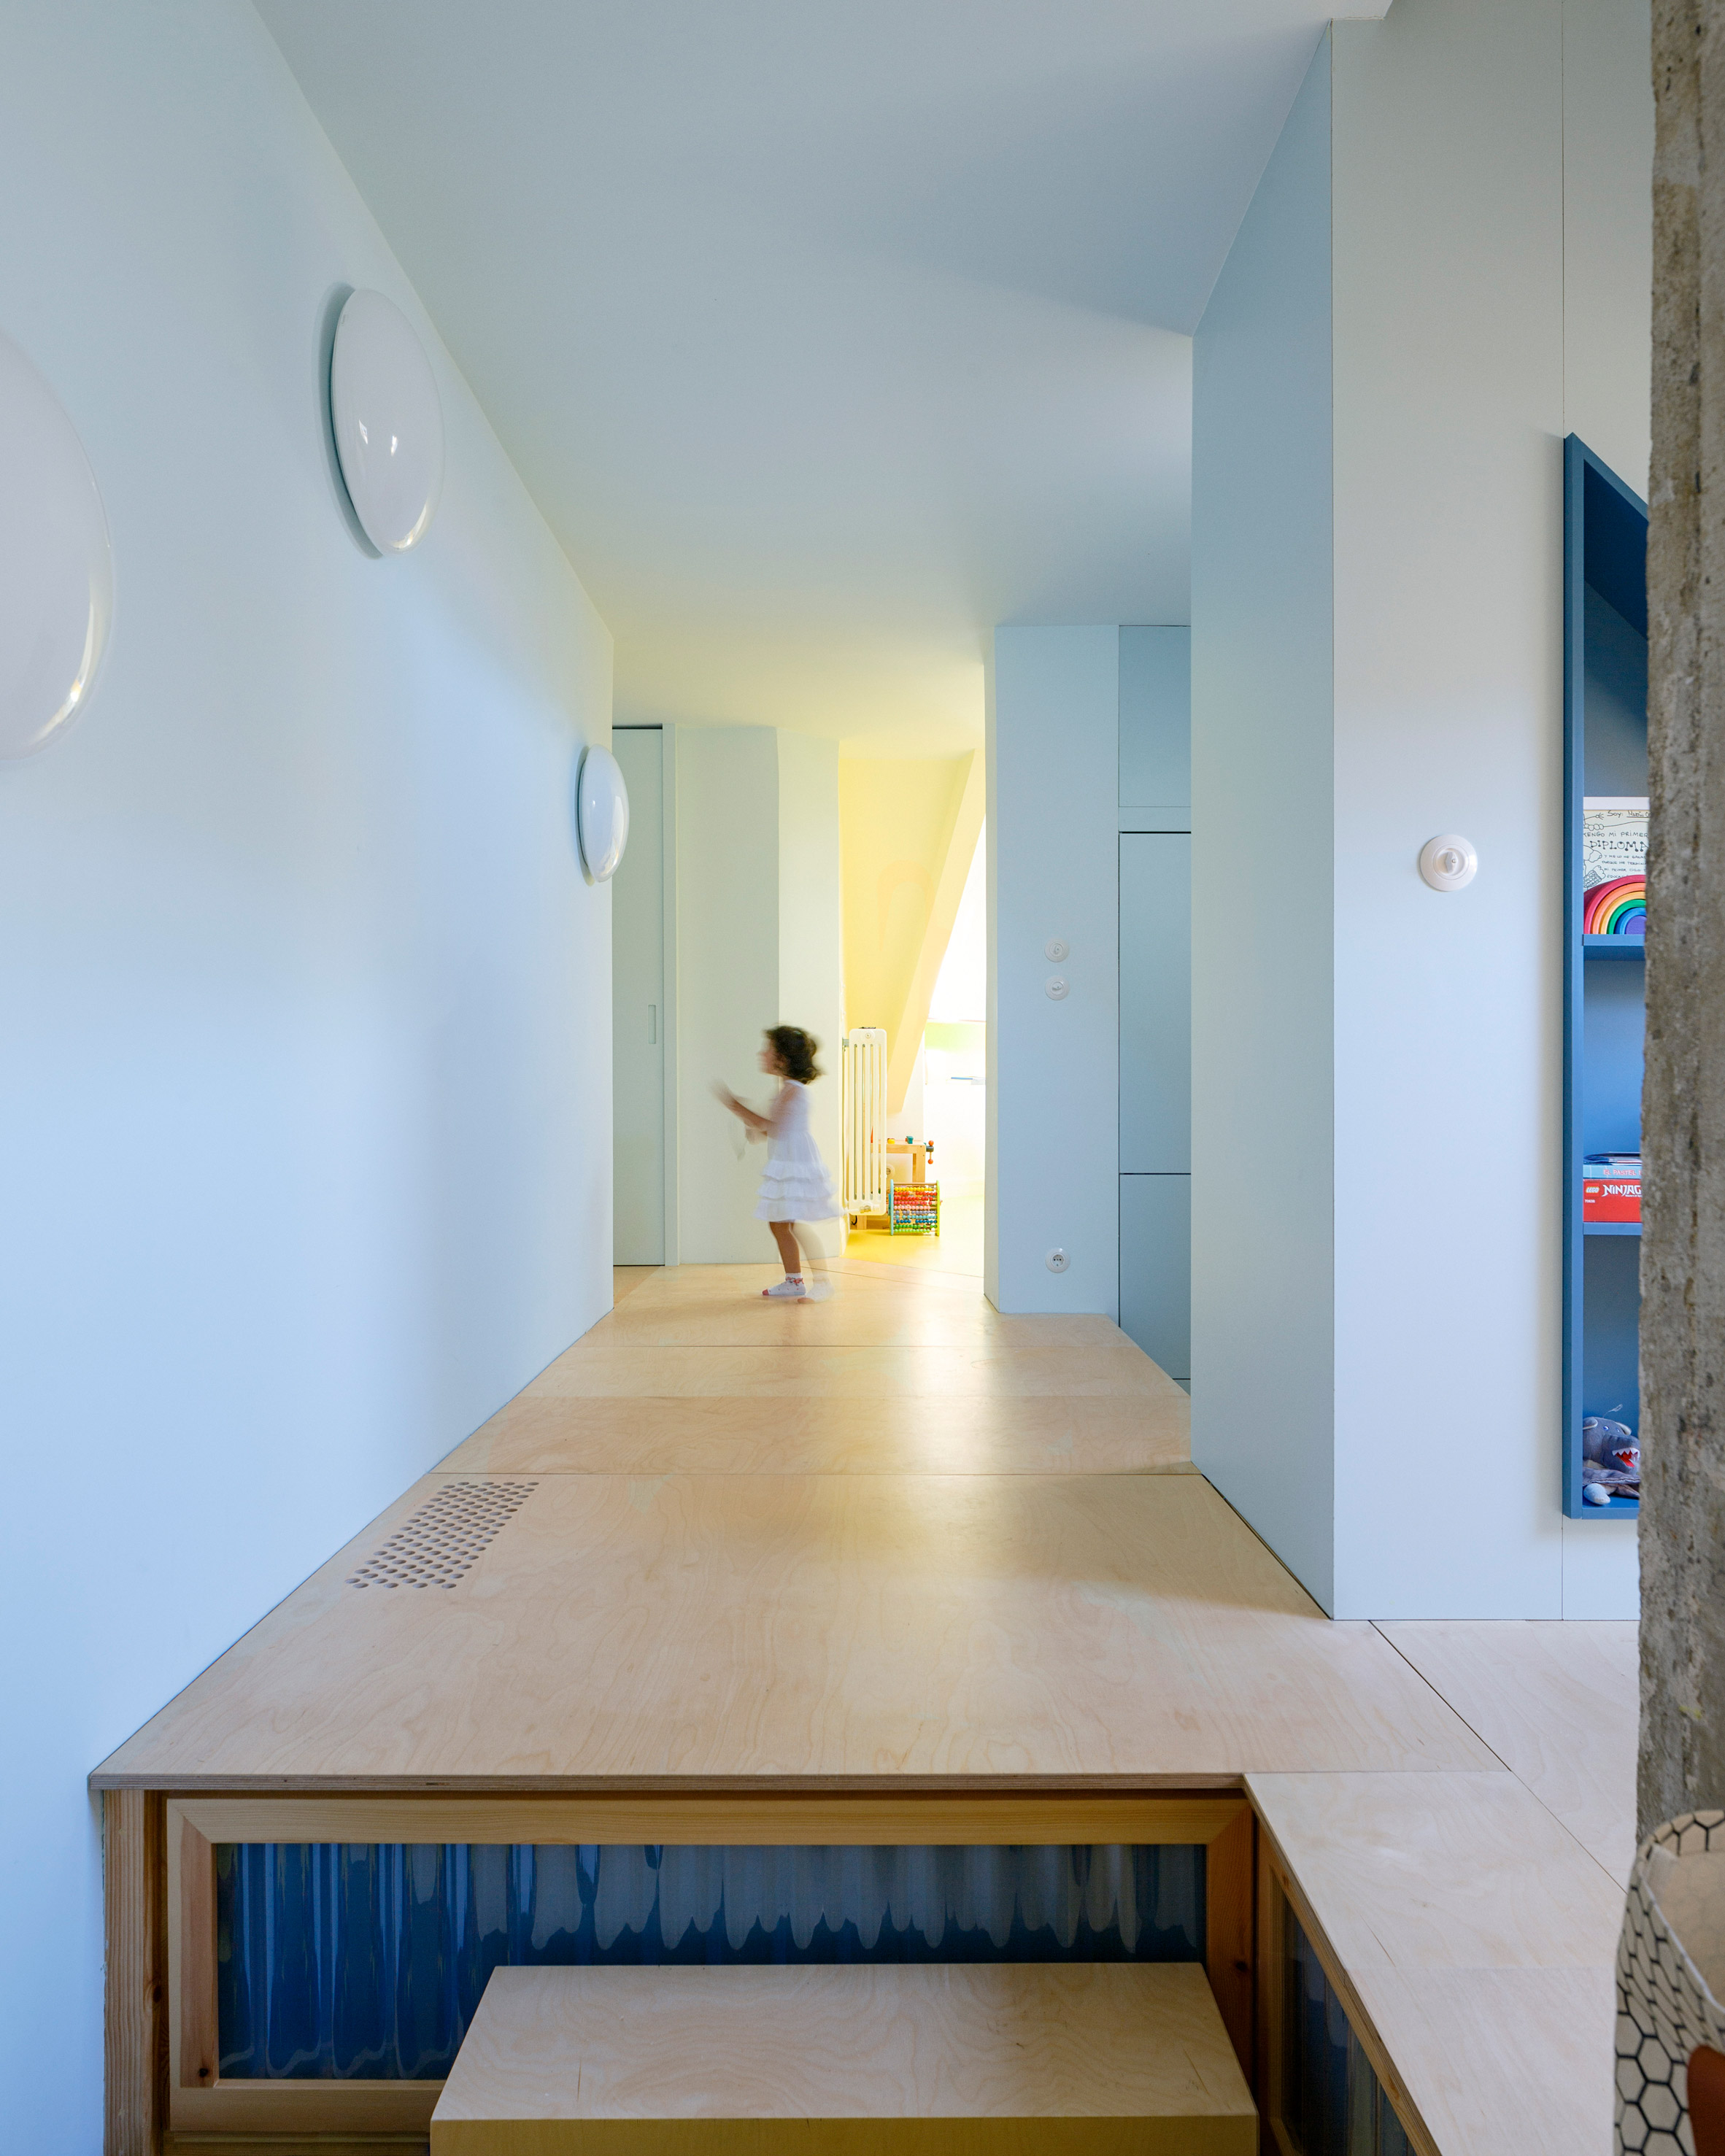 Interiors of 100.60 Apartment, designed by Azab